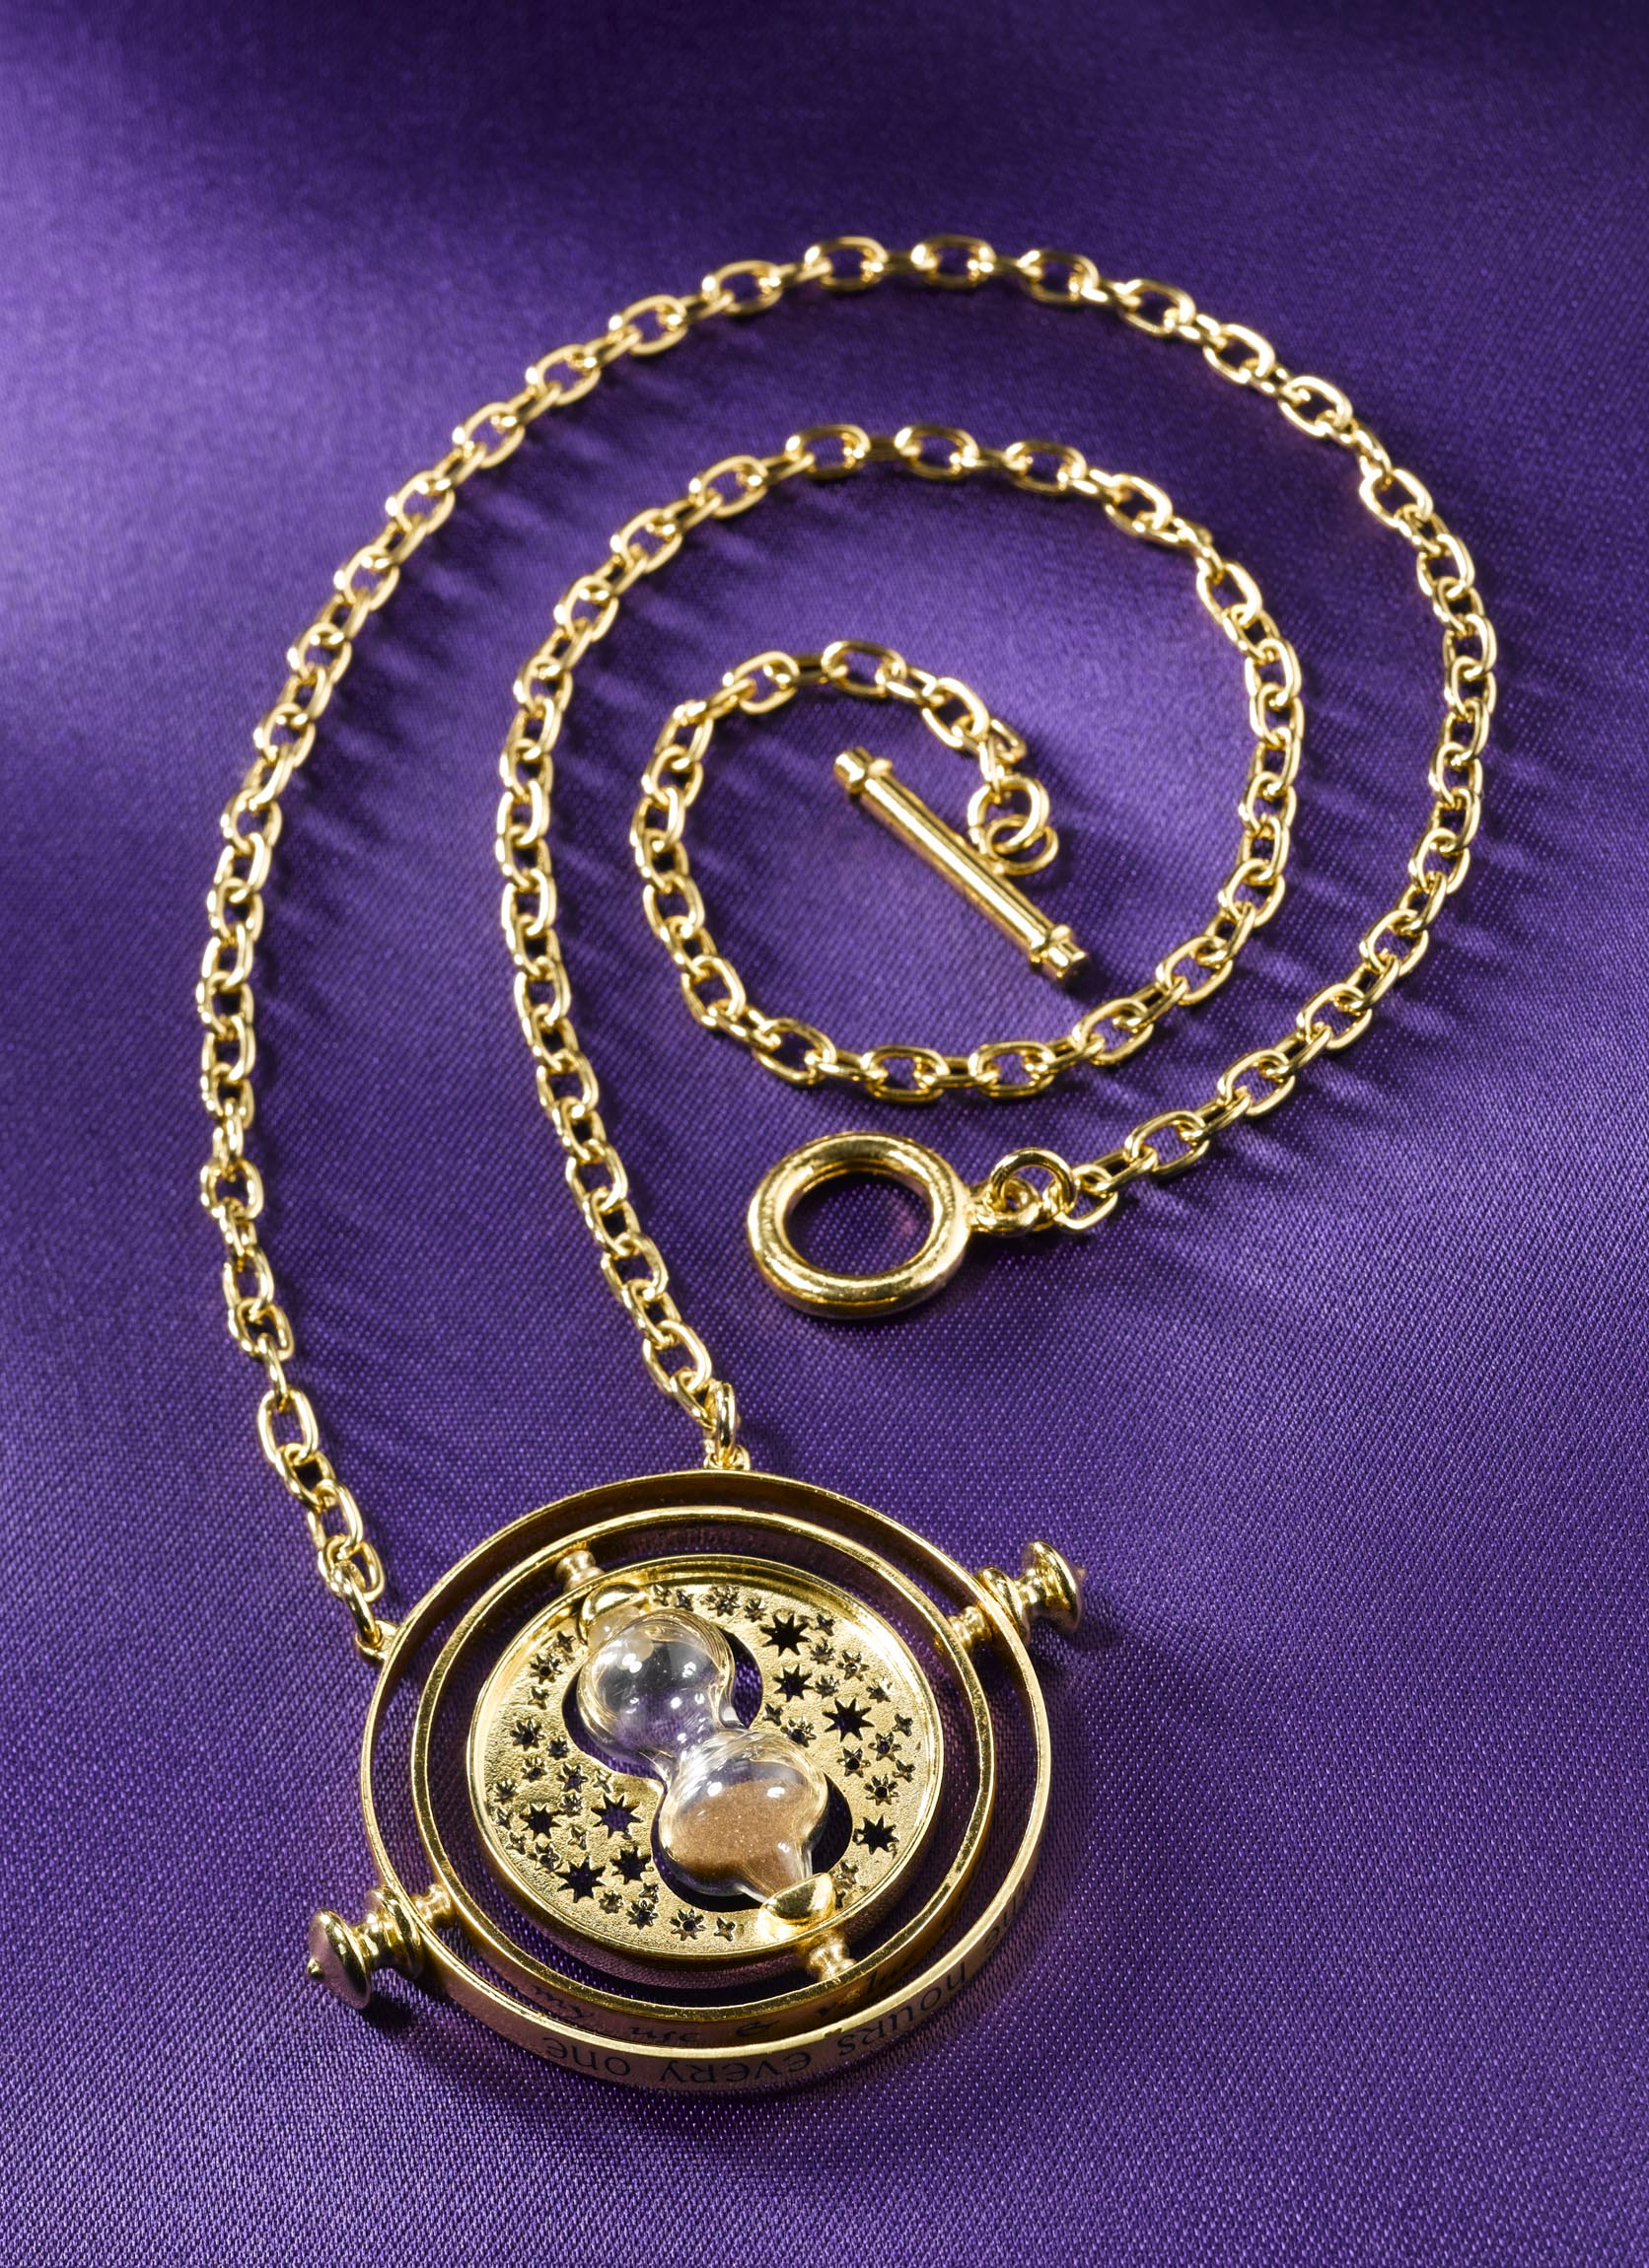 Harry Potter Time Turner - Hermione Time Turner Necklace